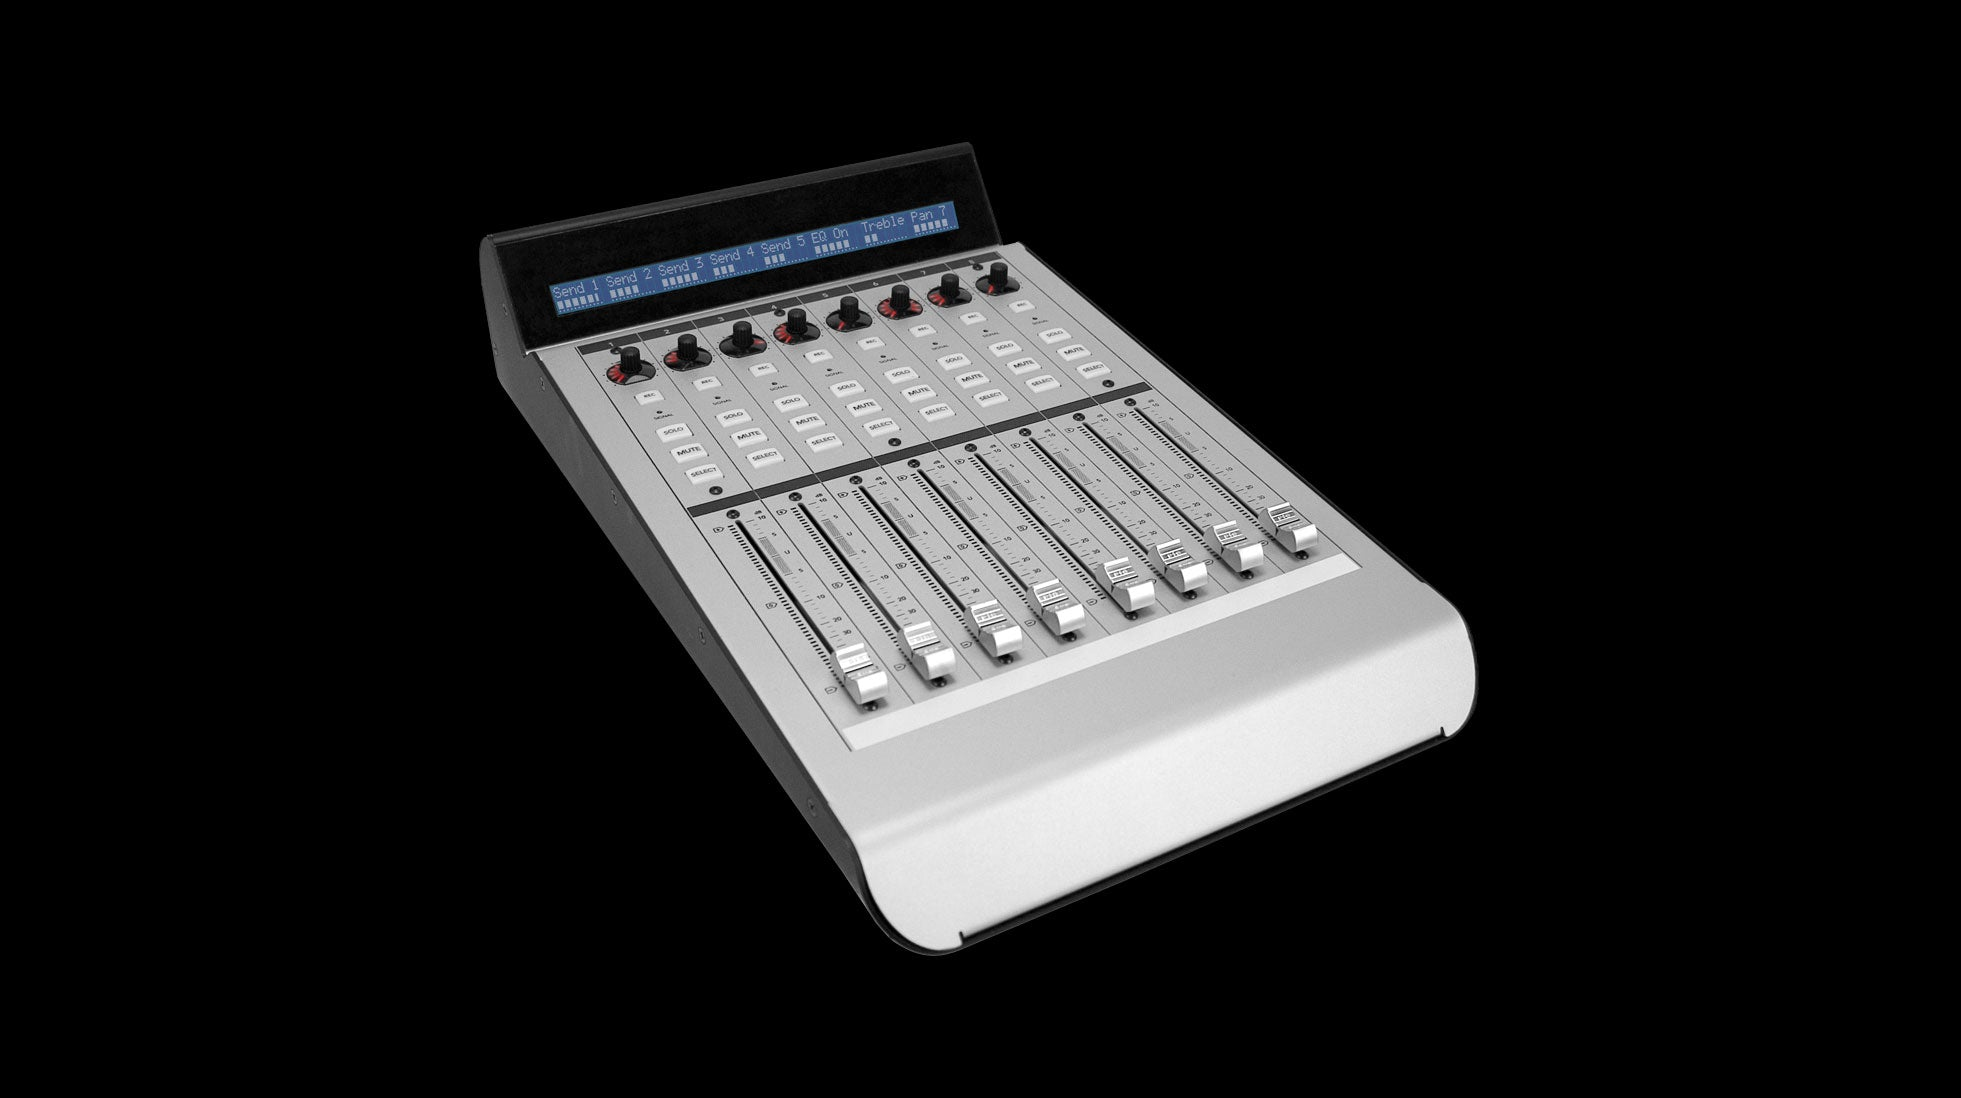 Mackie MCU XT-Pro DAW Control Surface Extender – Big Bear Sound Ltd